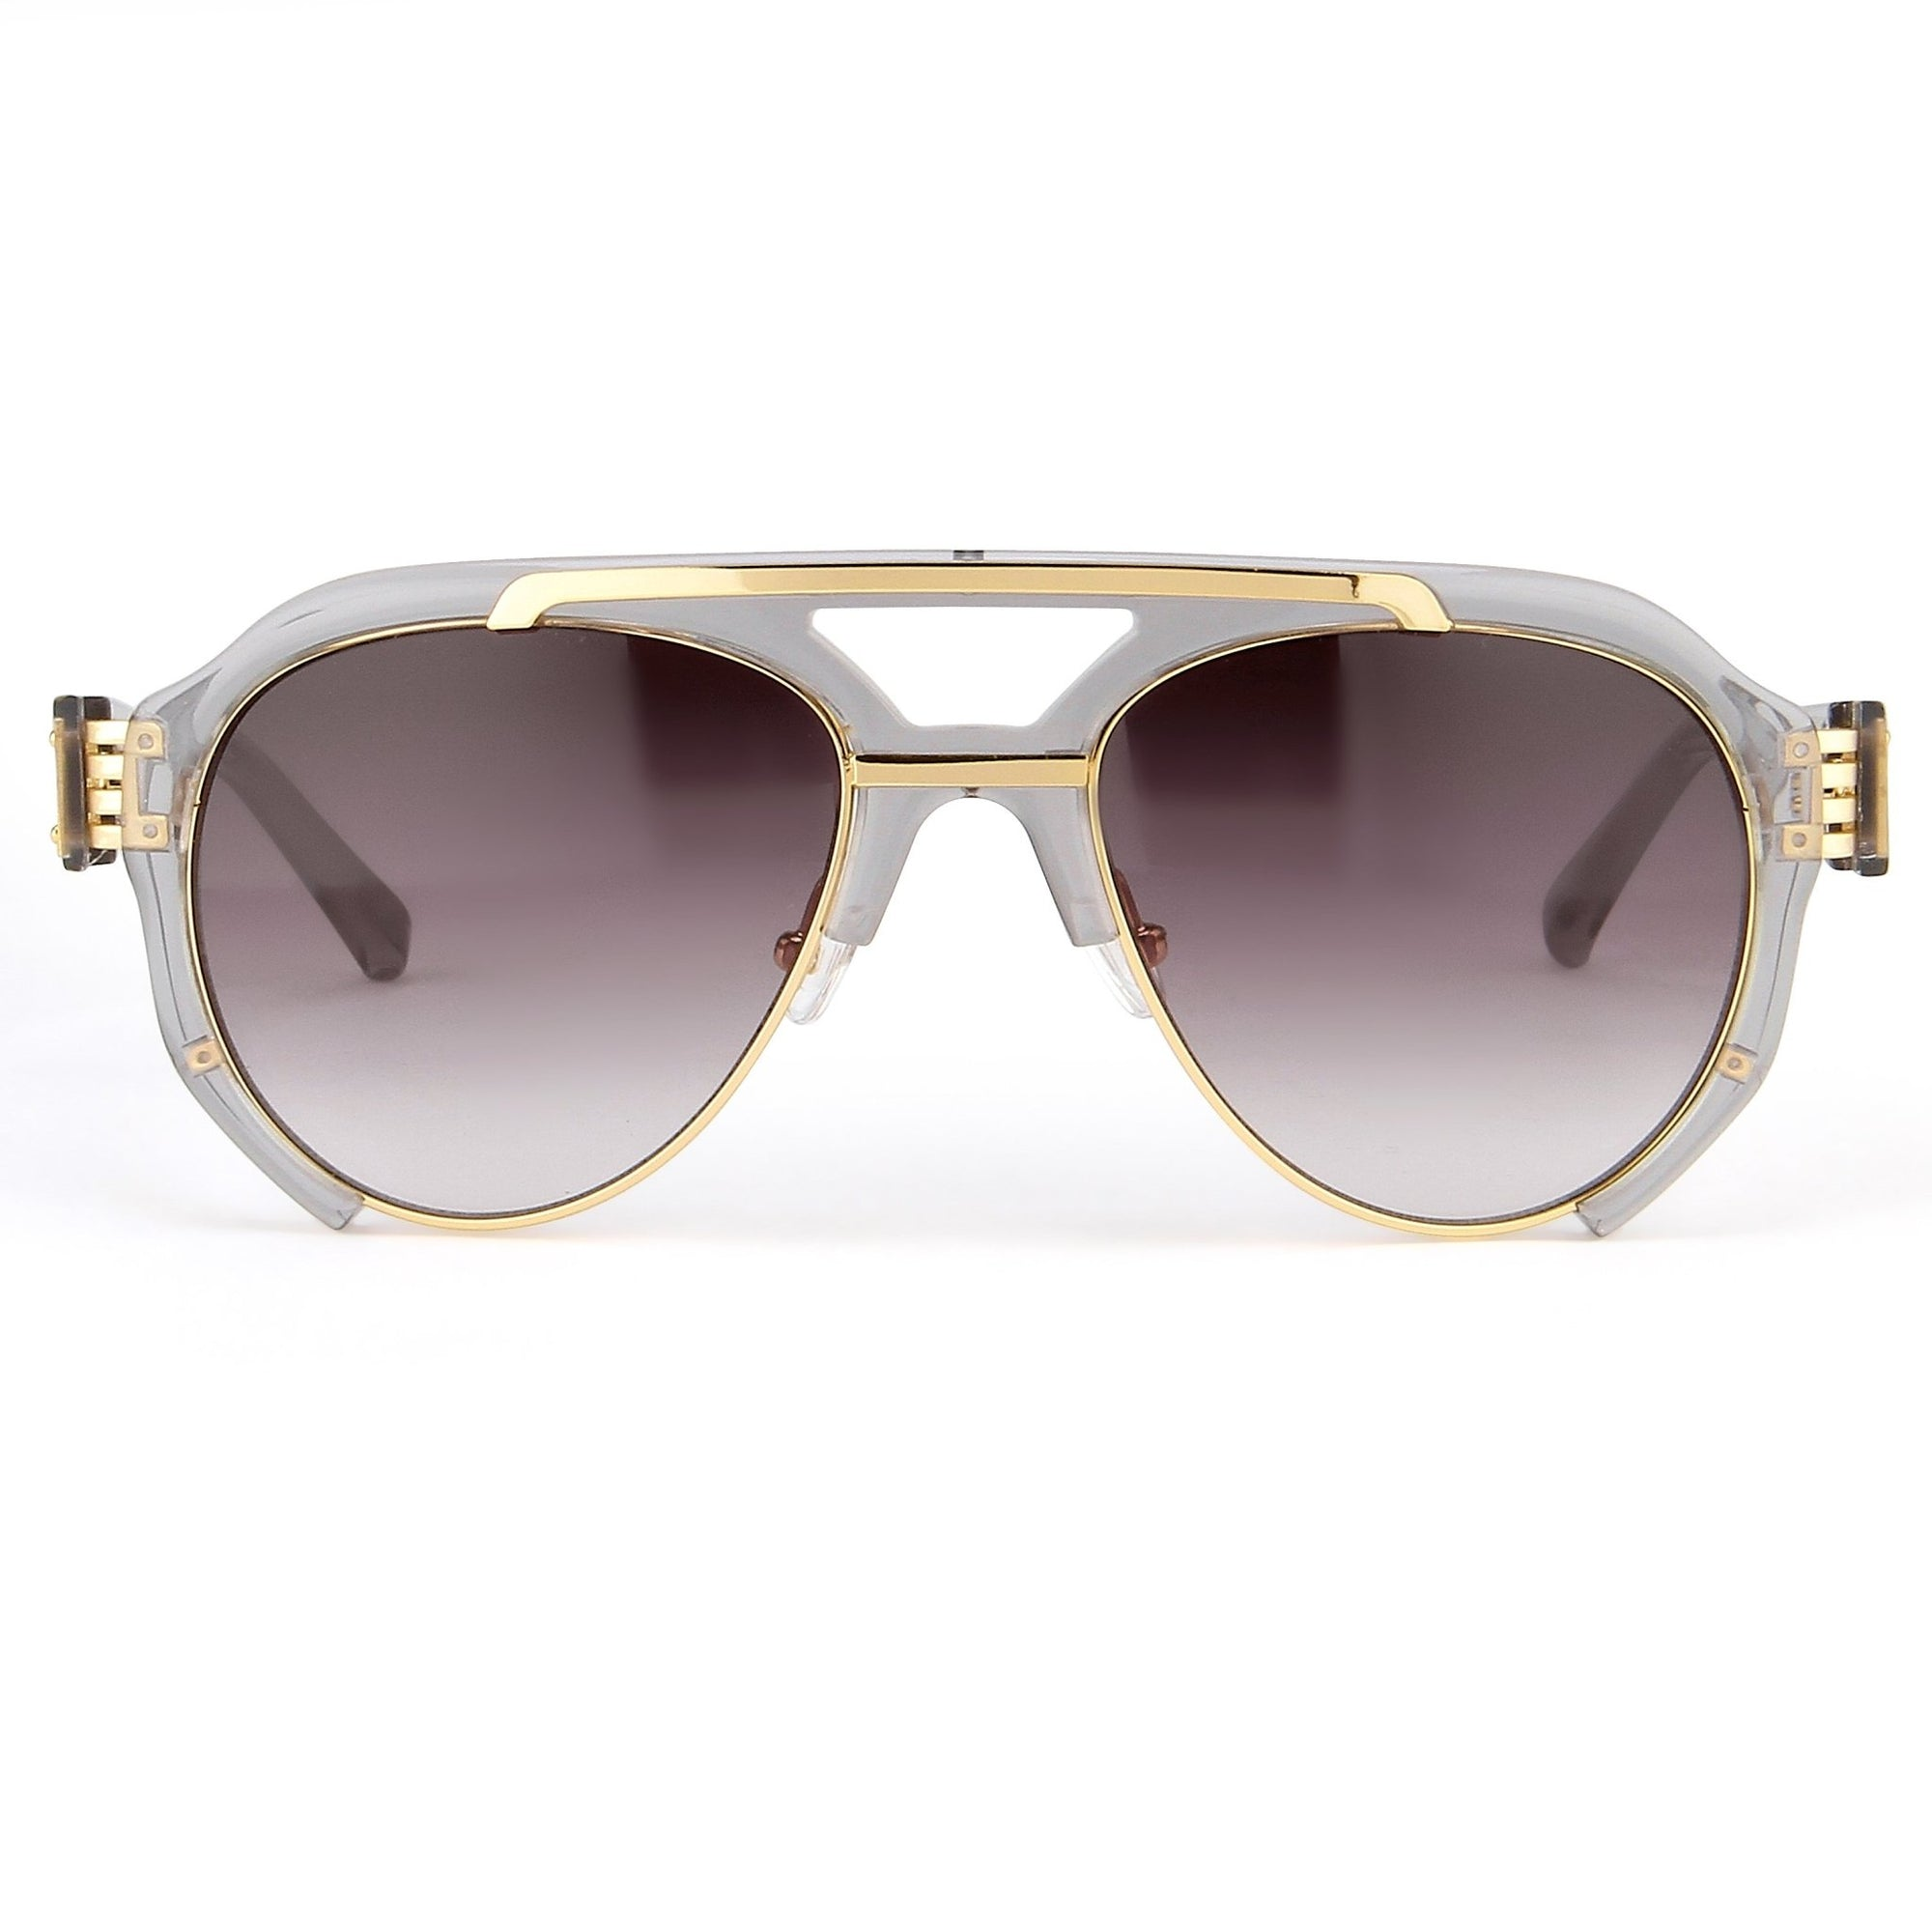 Prabal Gurung Sunglasses Unisex Aviator Smoke Acetate and Gold CAT3 Grey Gradient Lenses PG11C3SUN - Watches & Crystals